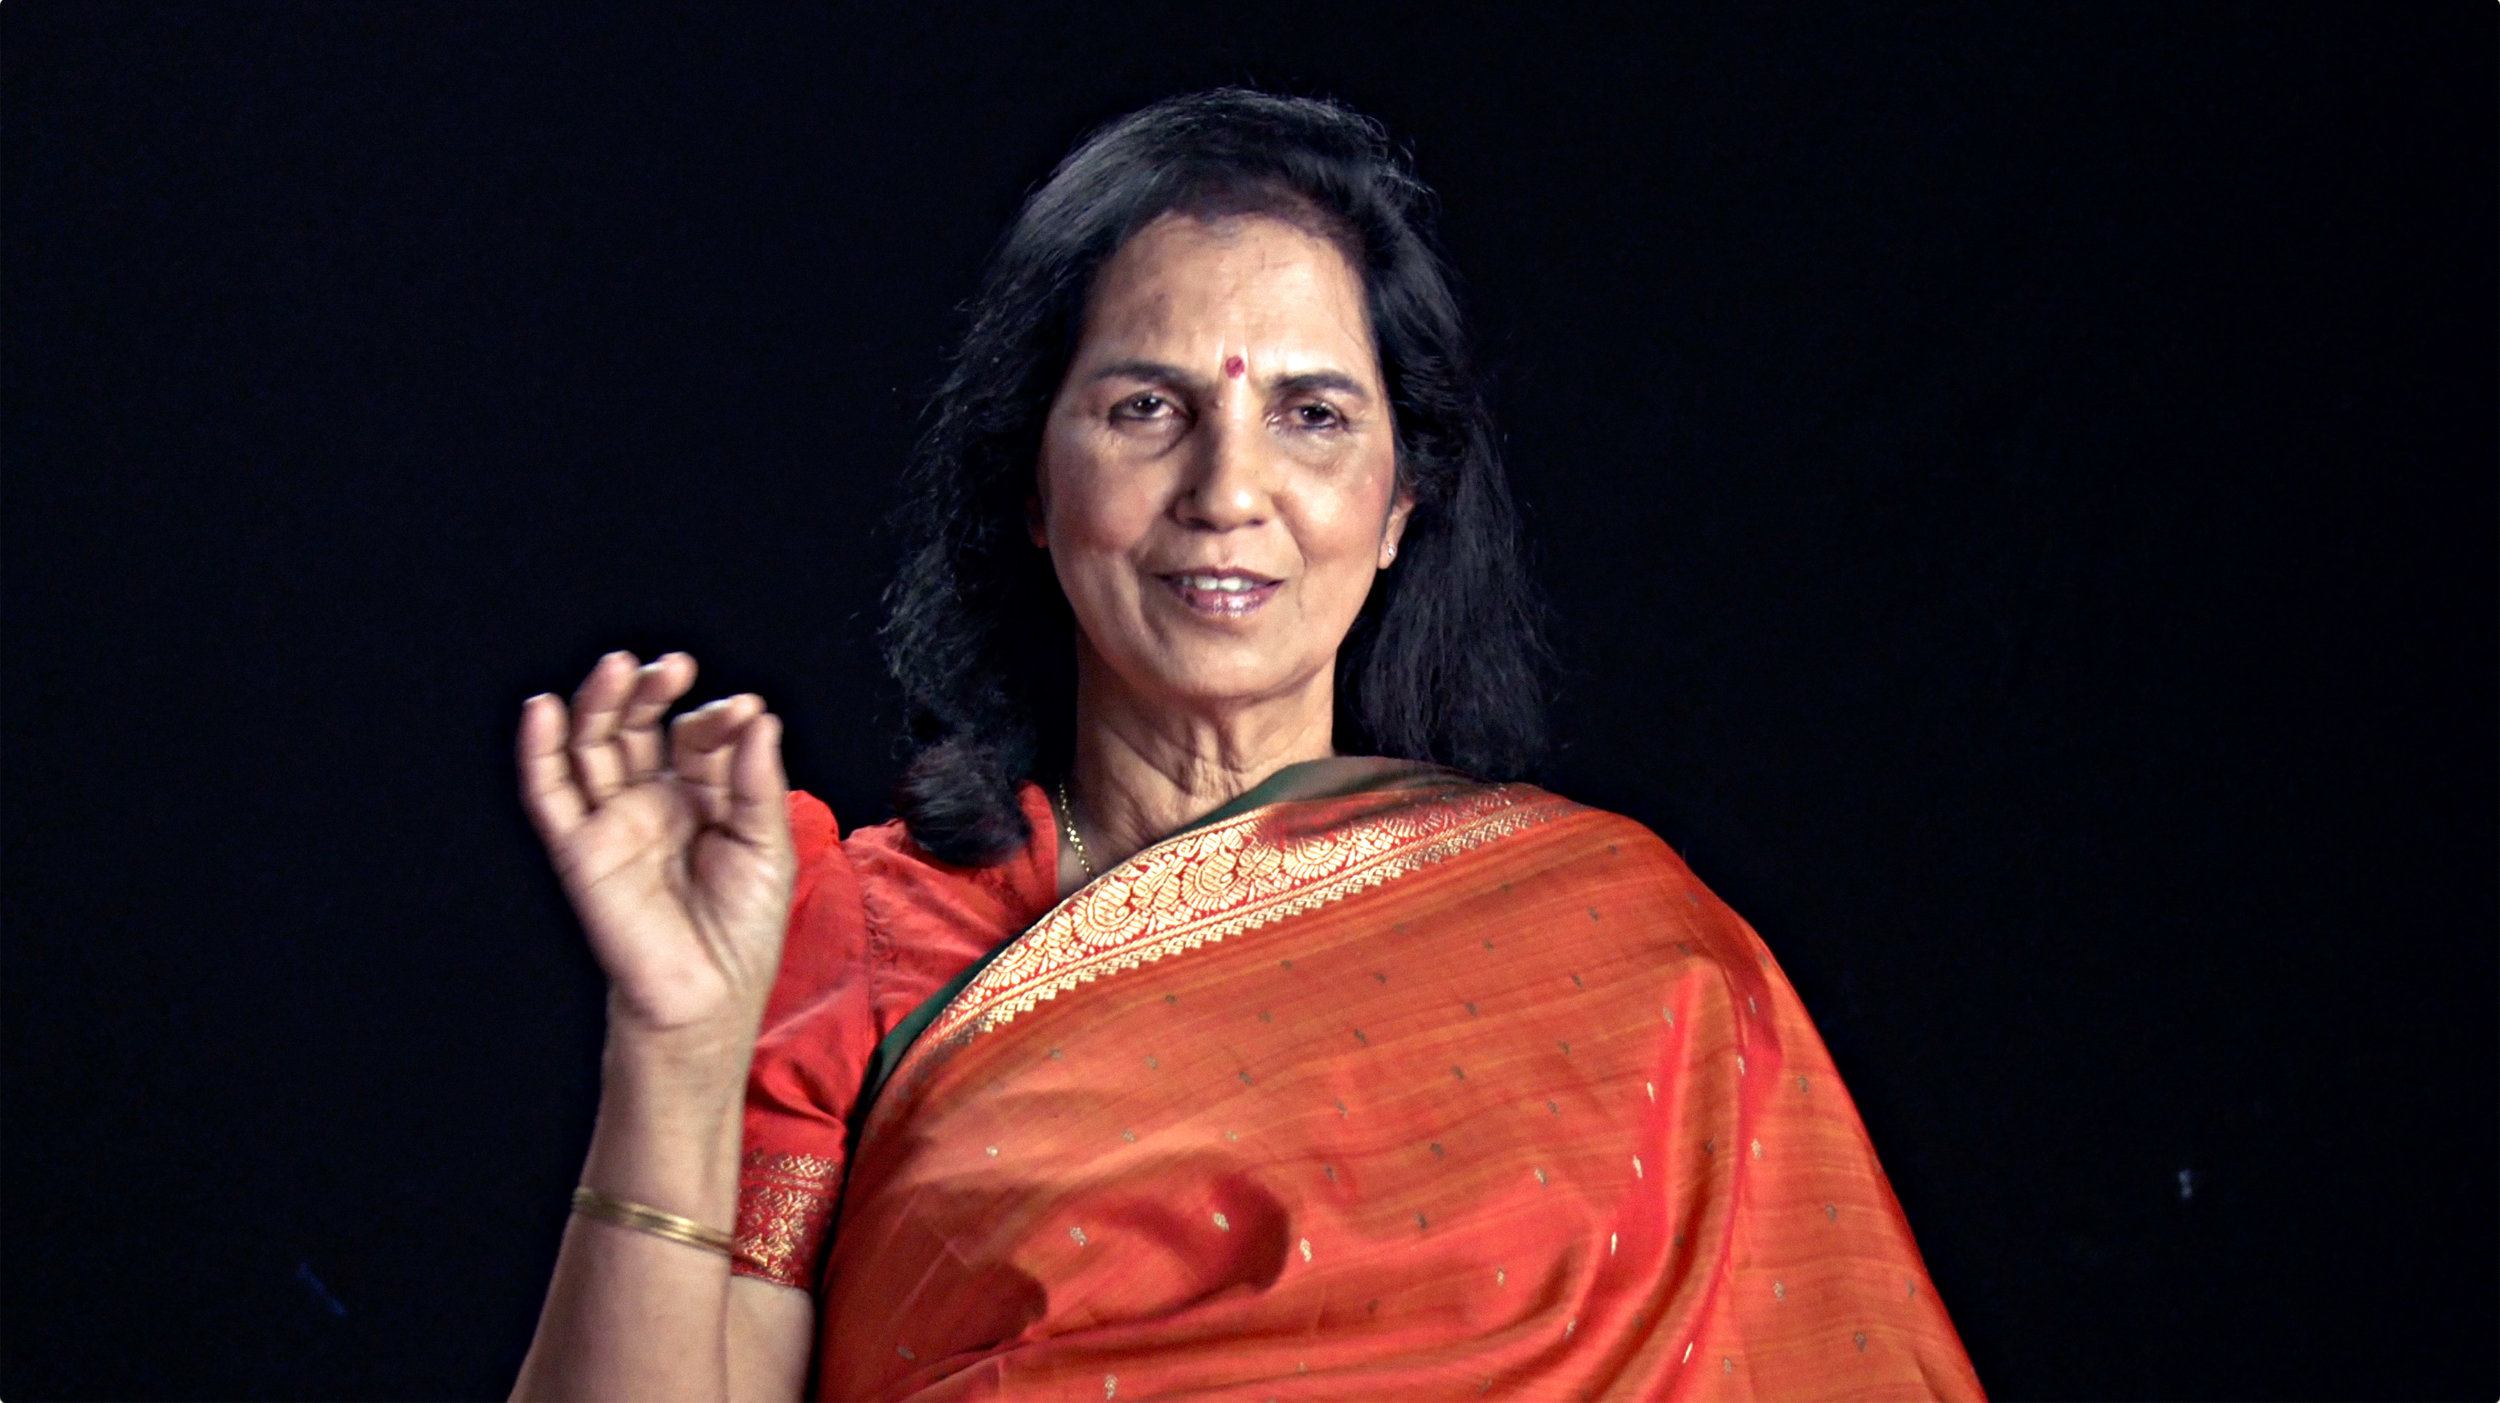 Dr. Suniti Solomon, a pioneering female scientist and founder of YRG Care, India's foremost HIV/AIDS clinic.